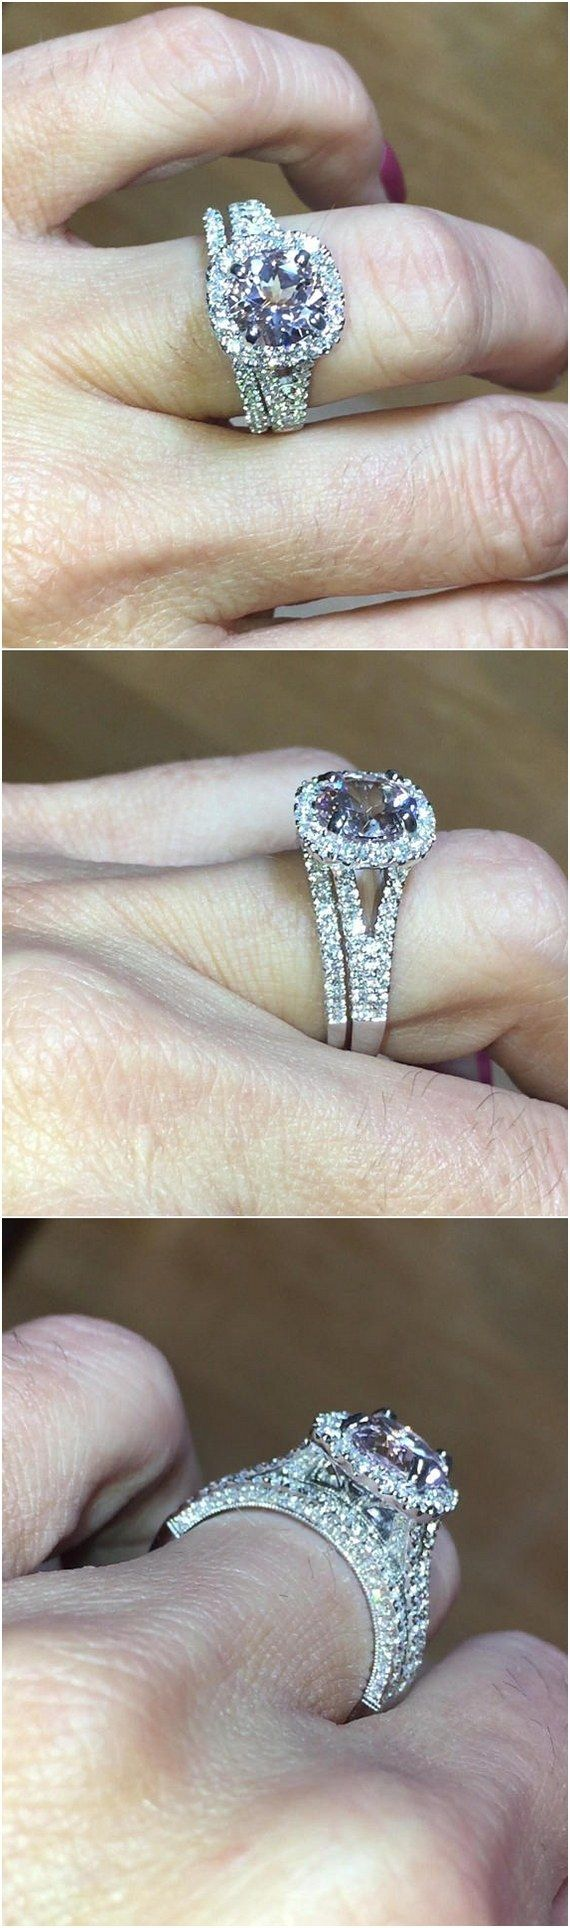 200 best The Ring {Mine} images on Pinterest | Rings, Beautiful ...